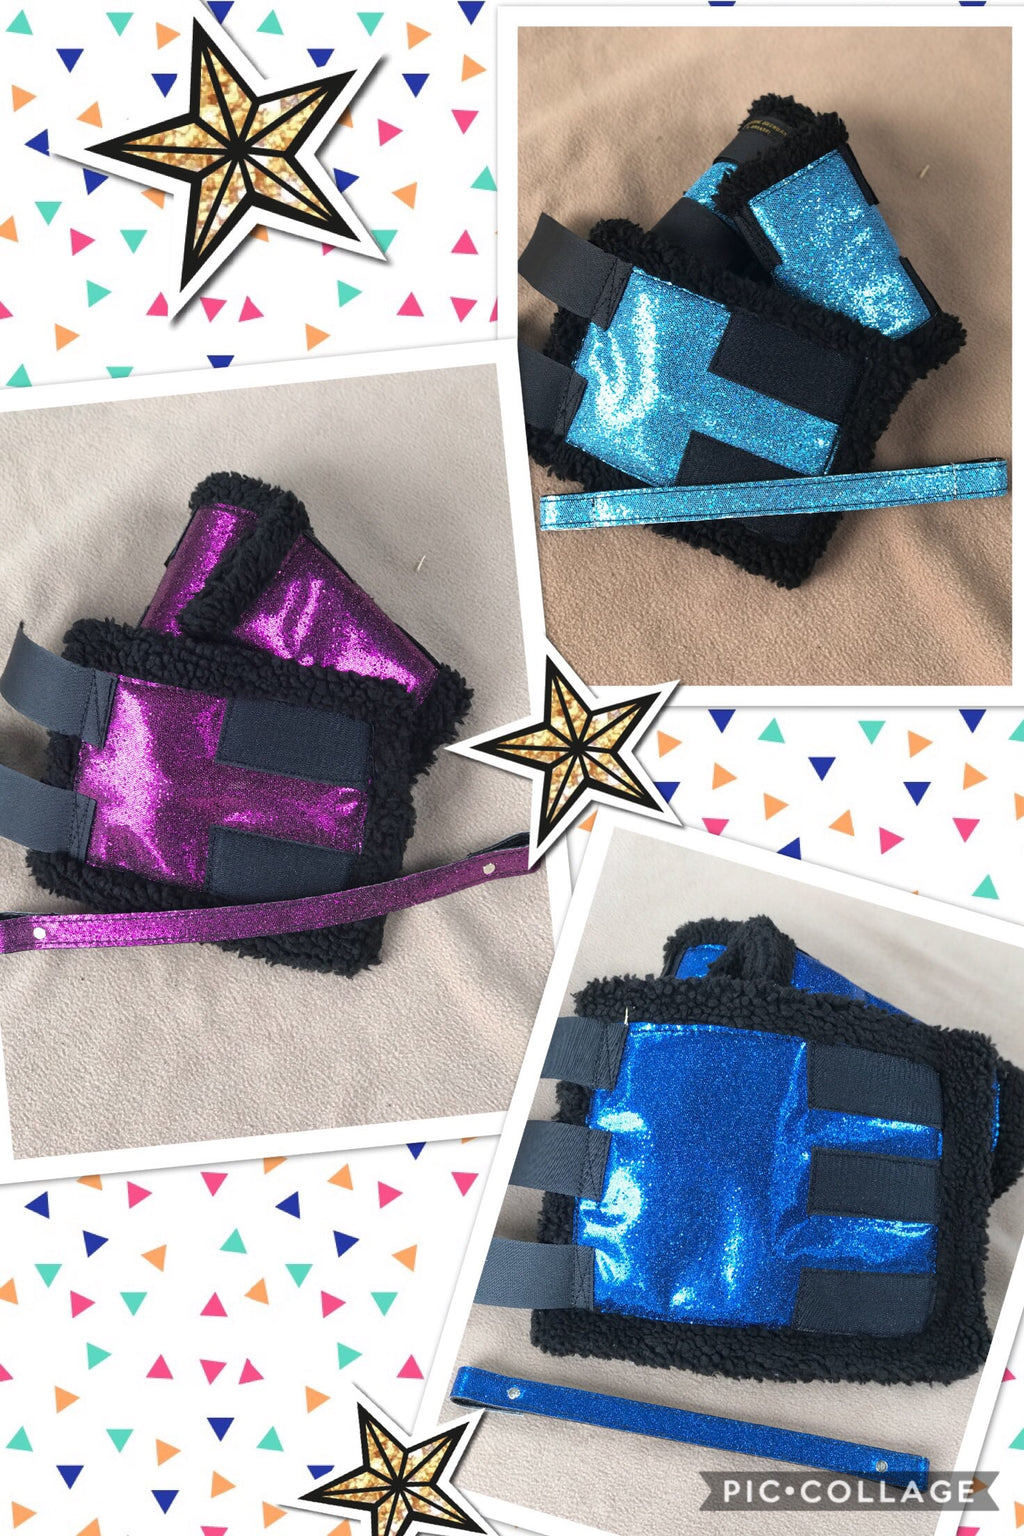 Sparkly boots (set of 4) & matching browband